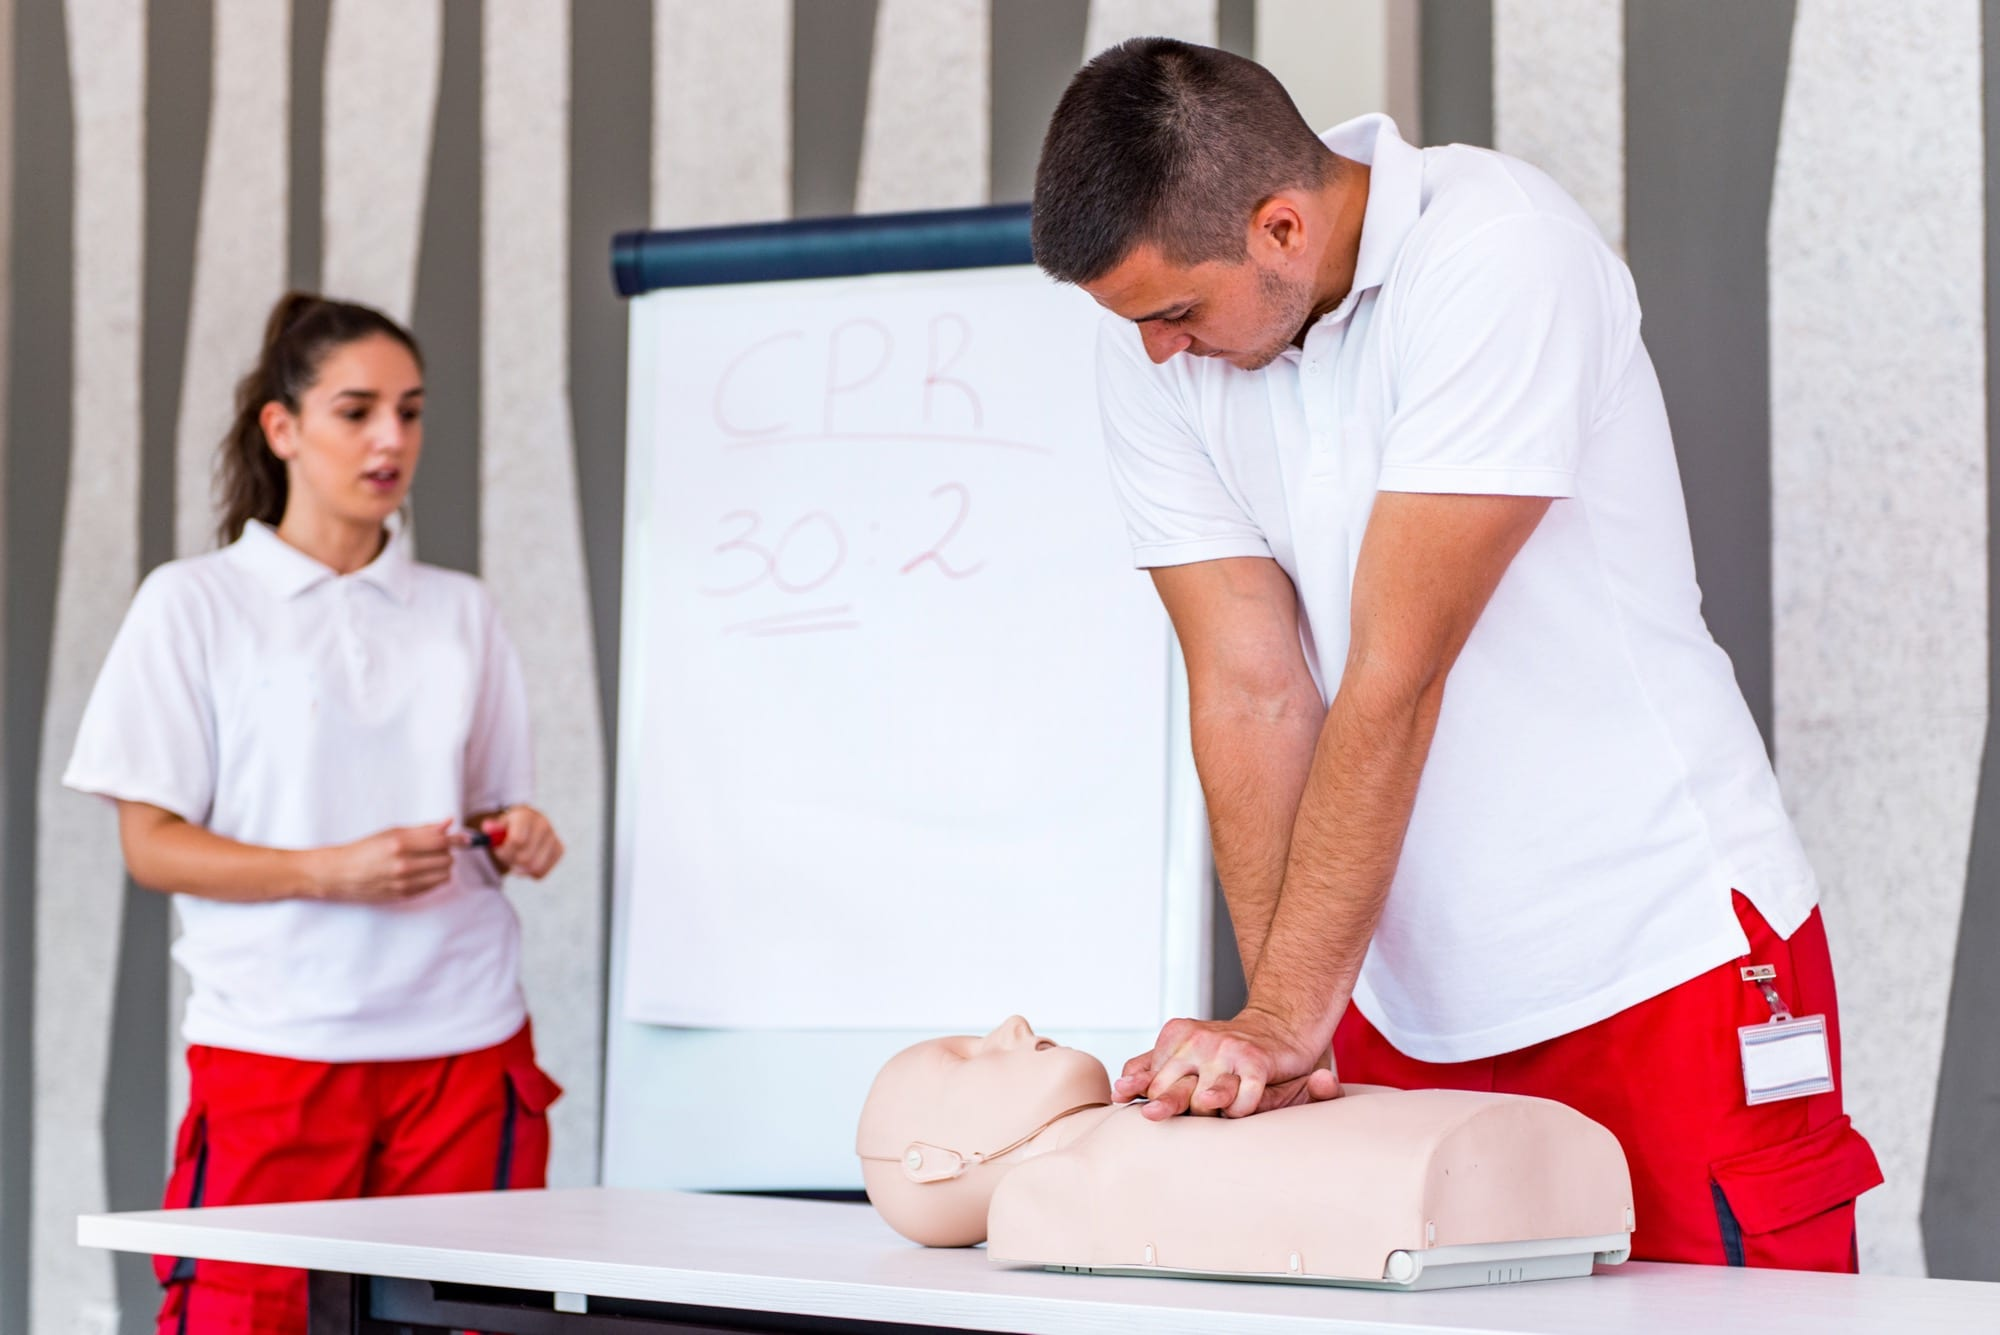 CPR Group Classes In Austin